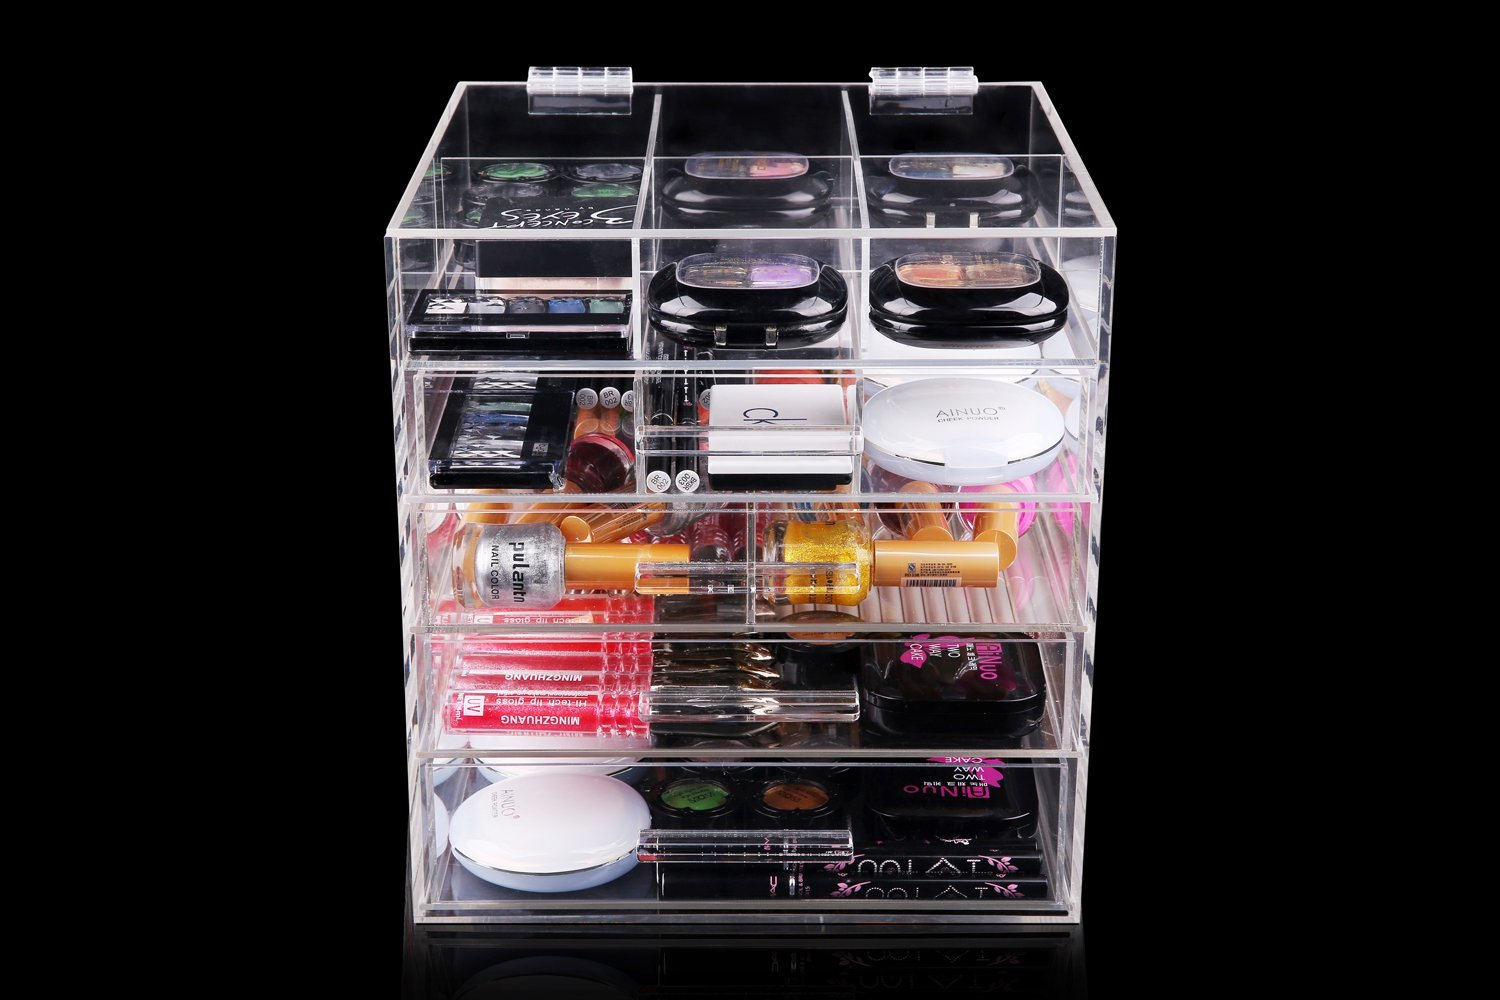 Fashion Clear Acrylic Makeup Organizer With Drawers